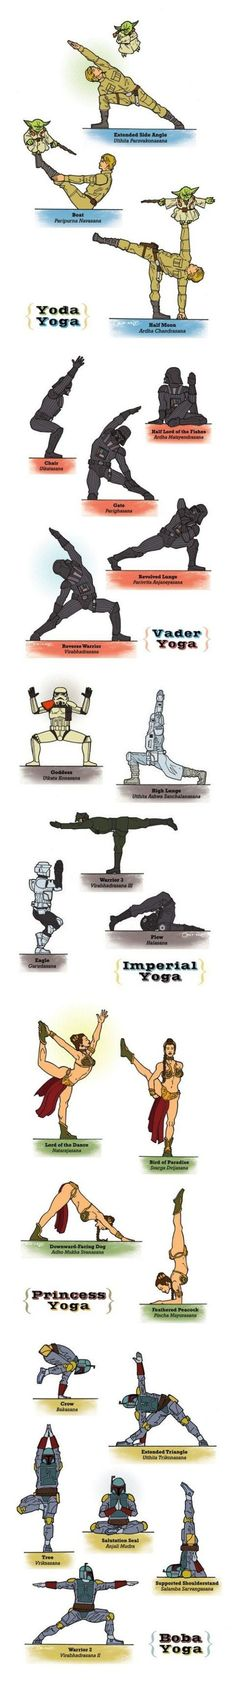 @Jackie Sandoval - so you'll be prepared if you ever take up yoga! Star wars yoga